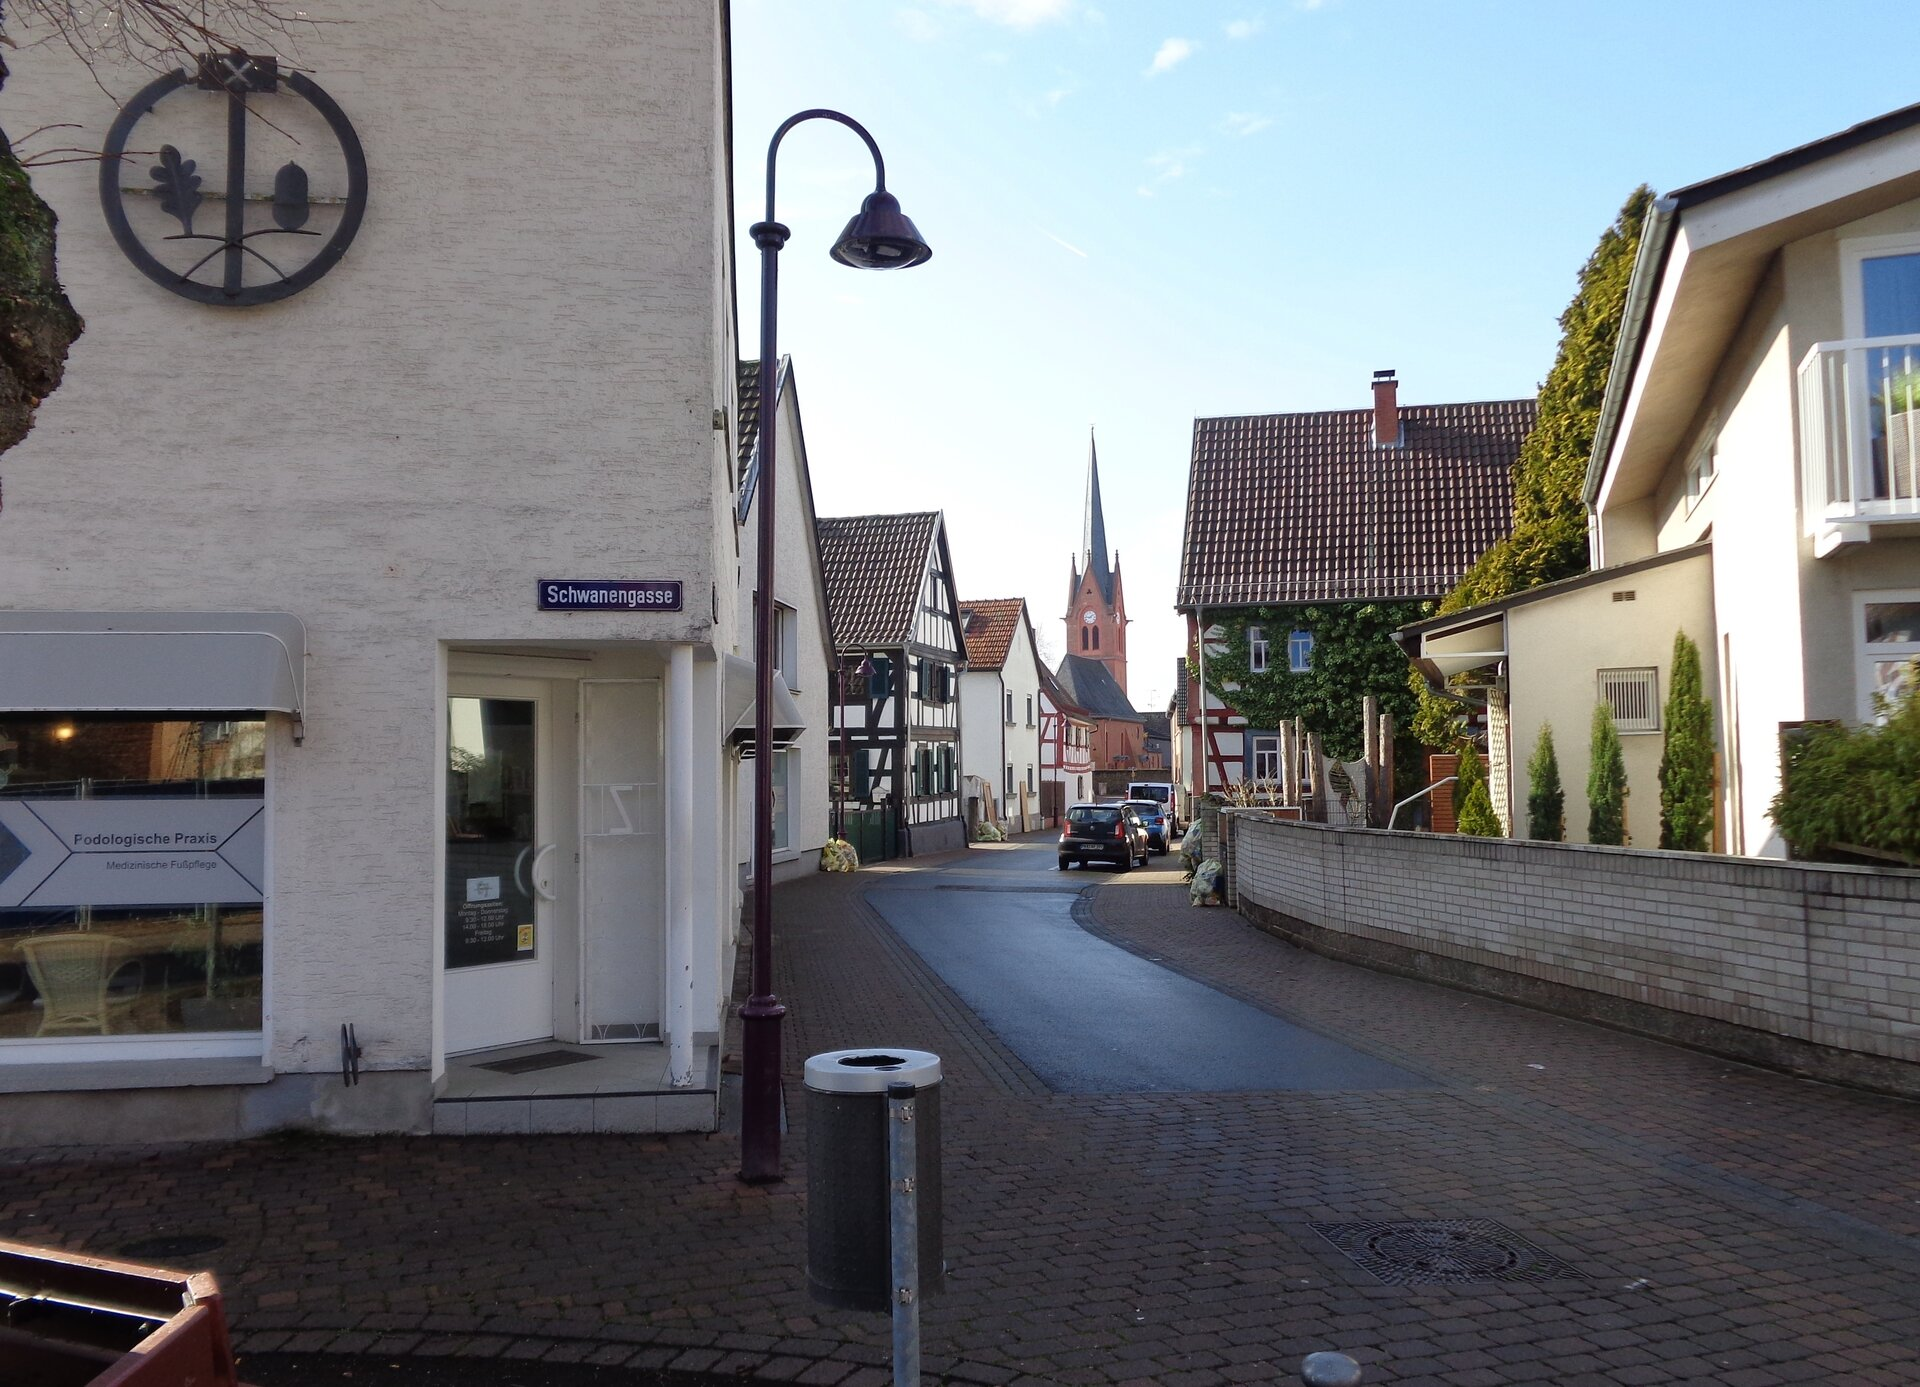 Foto: Stadt Maintal - Schwanengasse in Maintal Dörnigheim